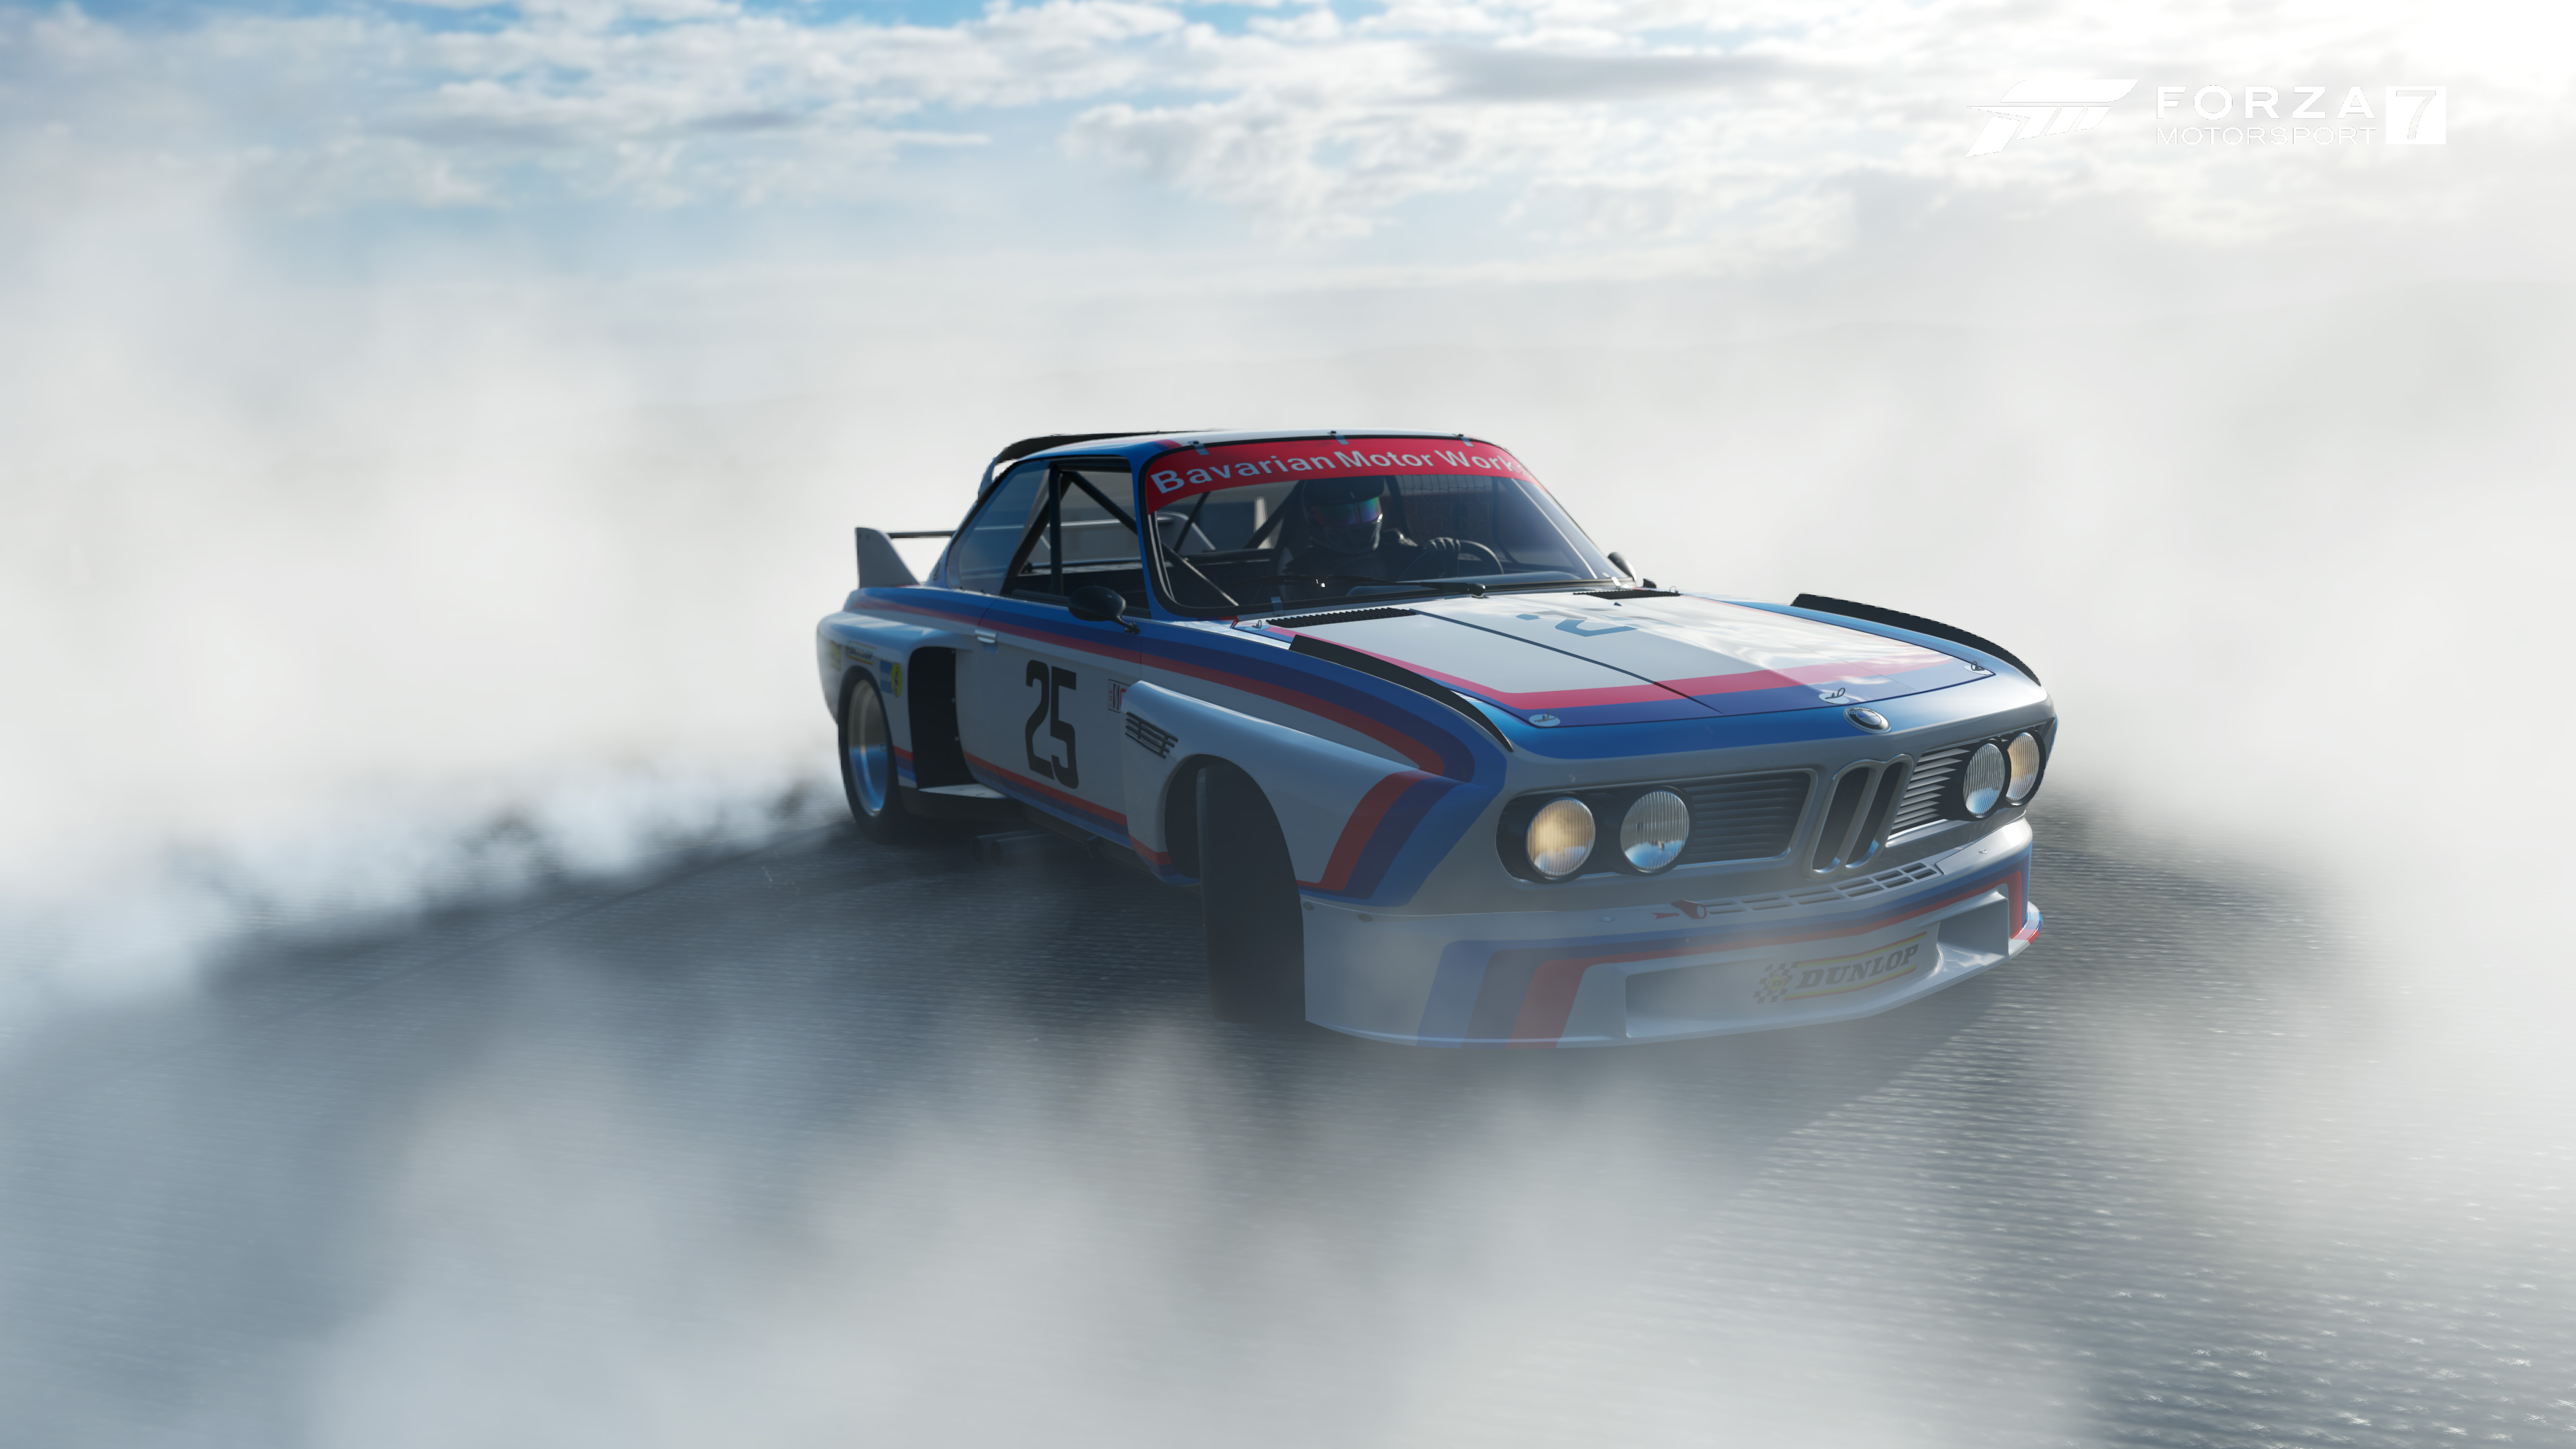 Forza Motorsport 7 Wallpapers Ultra Hd Gaming Backgrounds: 1976 Bmw Drifting Forza Motosport 7 4k, HD Games, 4k